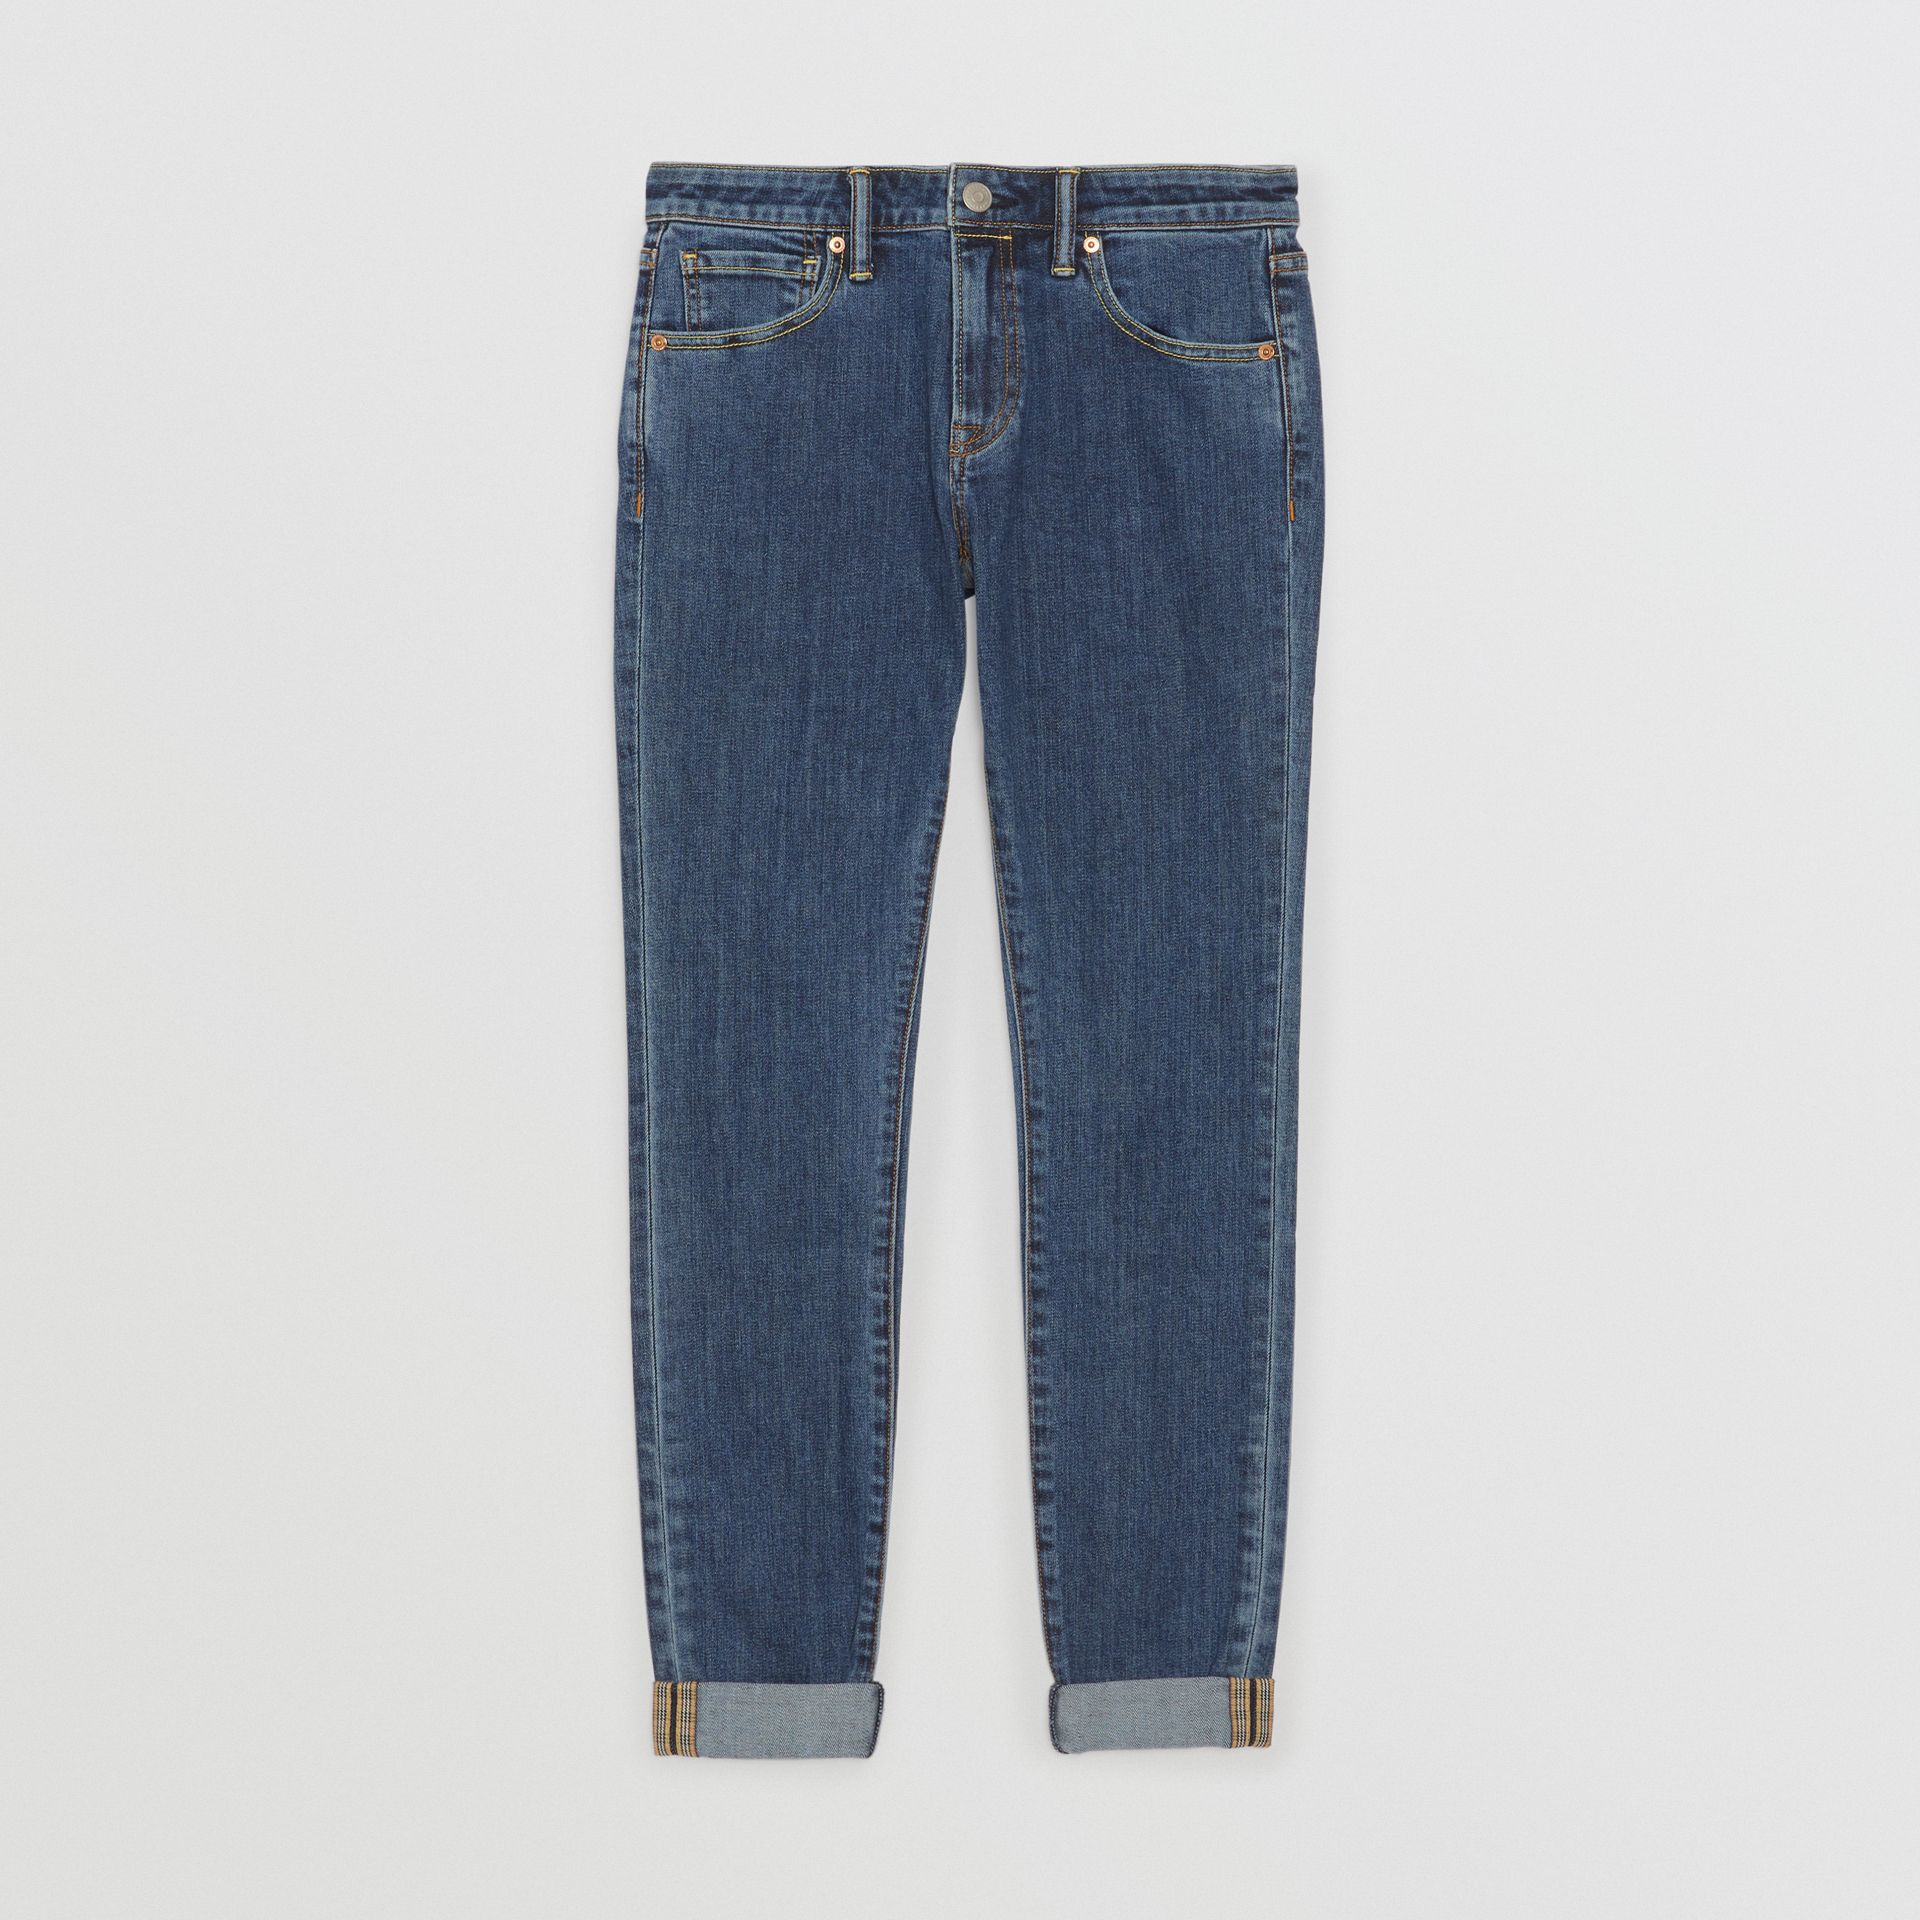 Skinny Fit Japanese Denim Jeans in Blue - Women | Burberry - gallery image 3